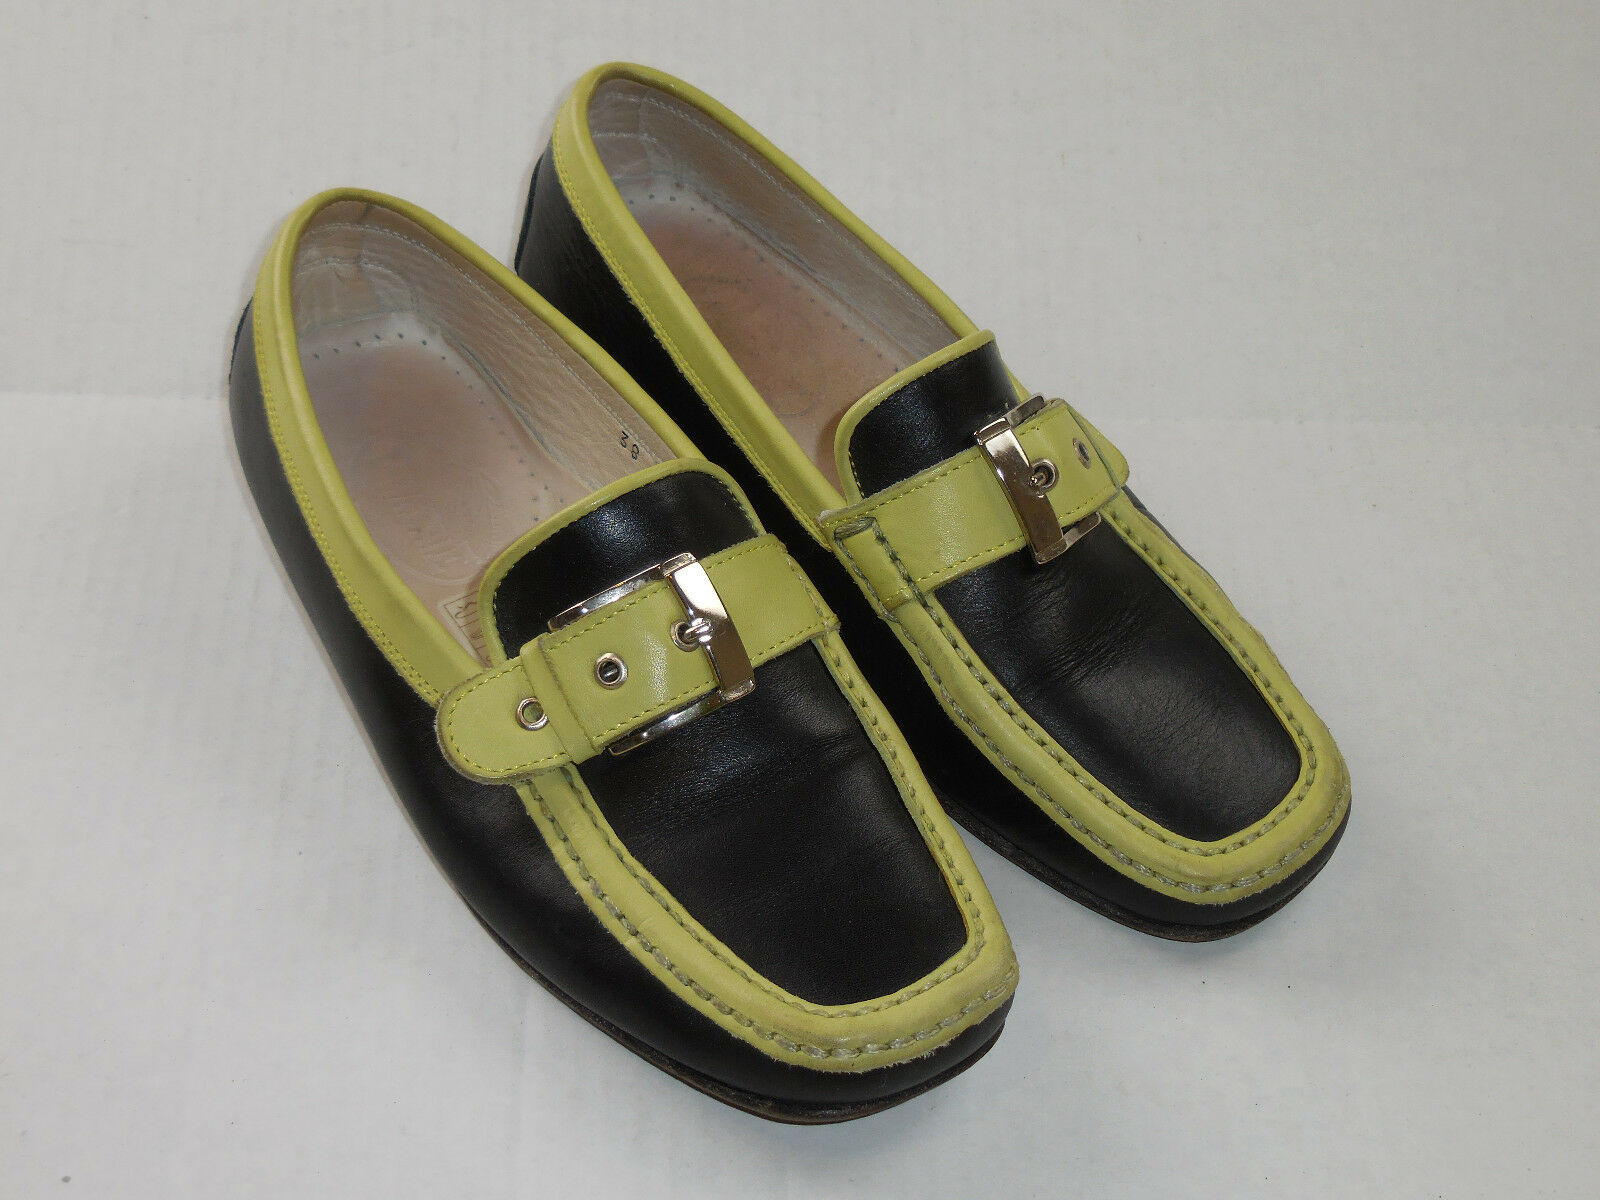 PRAERIE Black Green Italian Leather Slip On Loafers Silver Buckle EURO 38 US 7.5